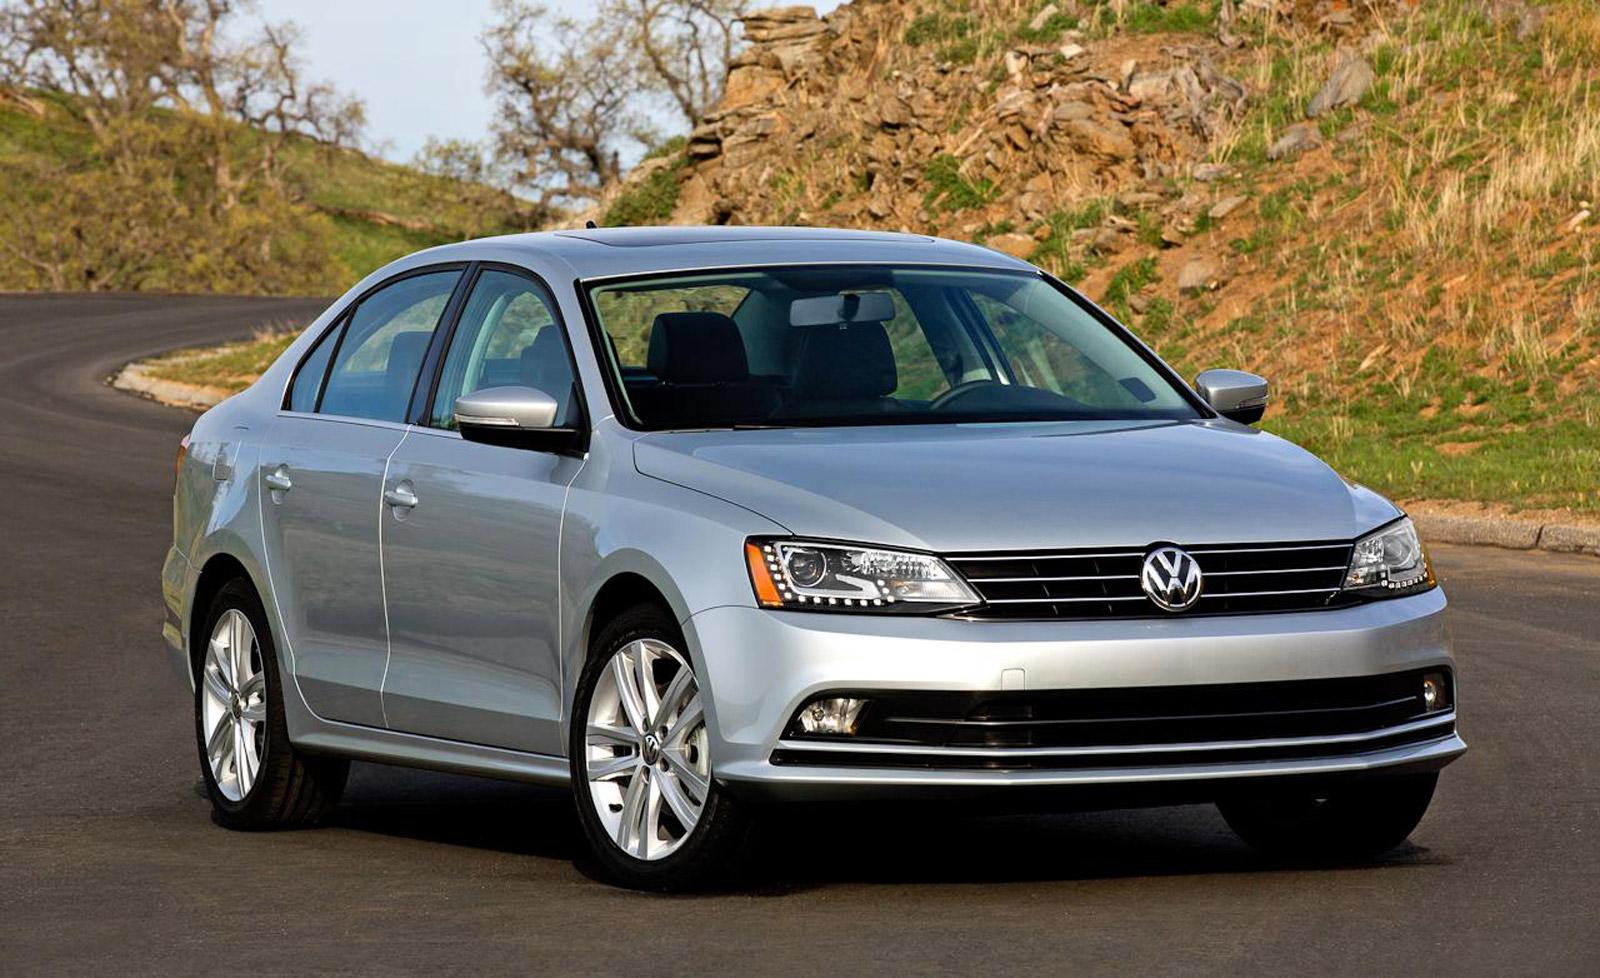 2015 volkswagen jetta vw review ratings specs prices and photos the car connection. Black Bedroom Furniture Sets. Home Design Ideas